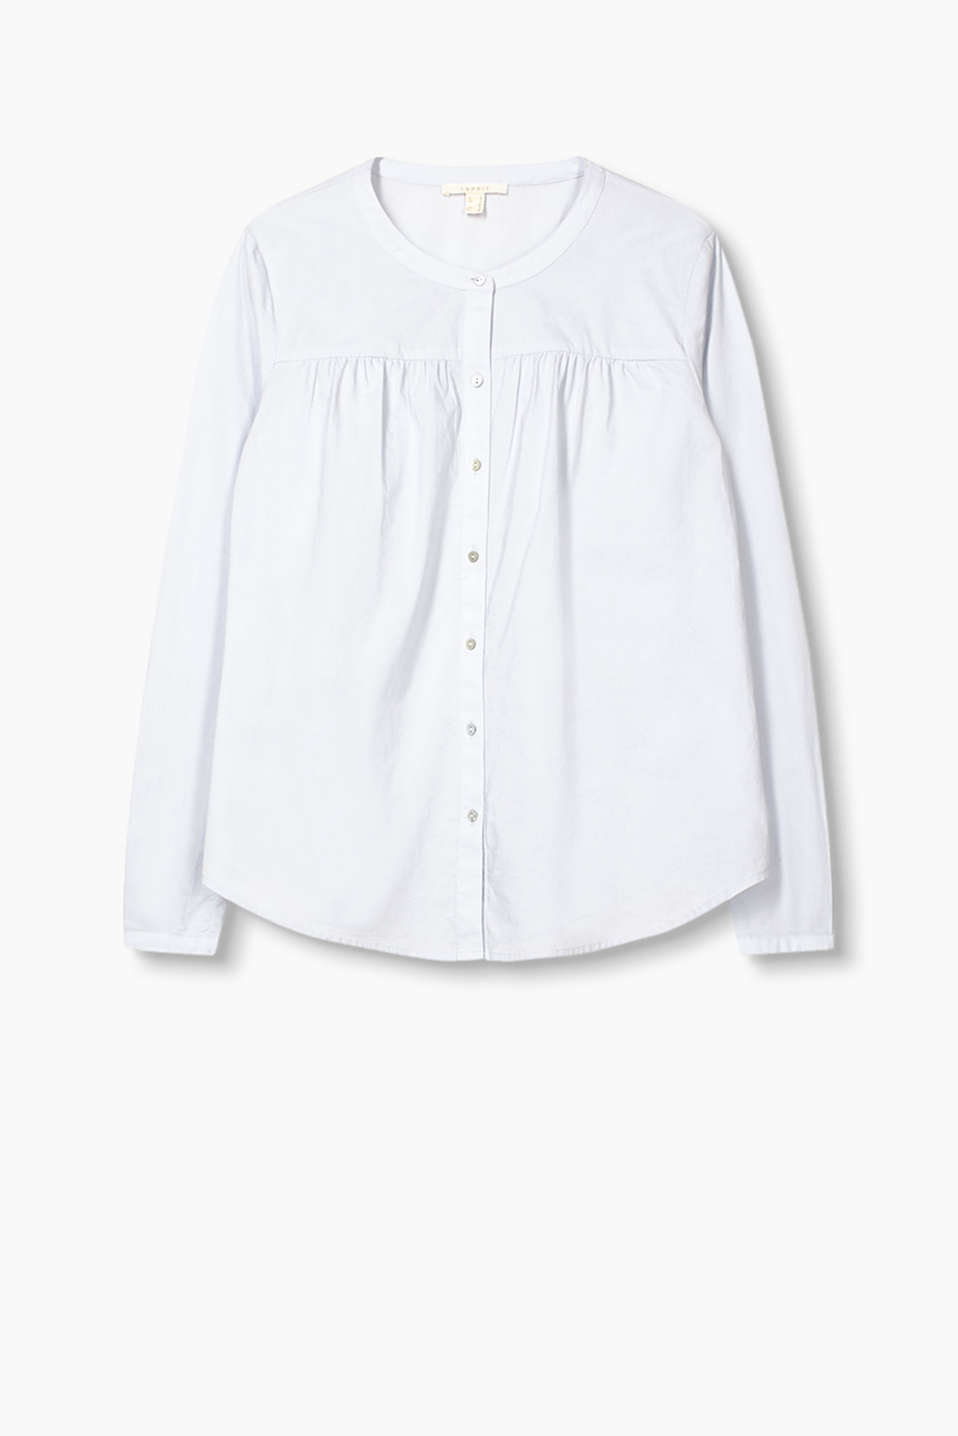 Blouse in smooth cotton fabric with gathered shoulder yokes and mother-of-pearl buttons